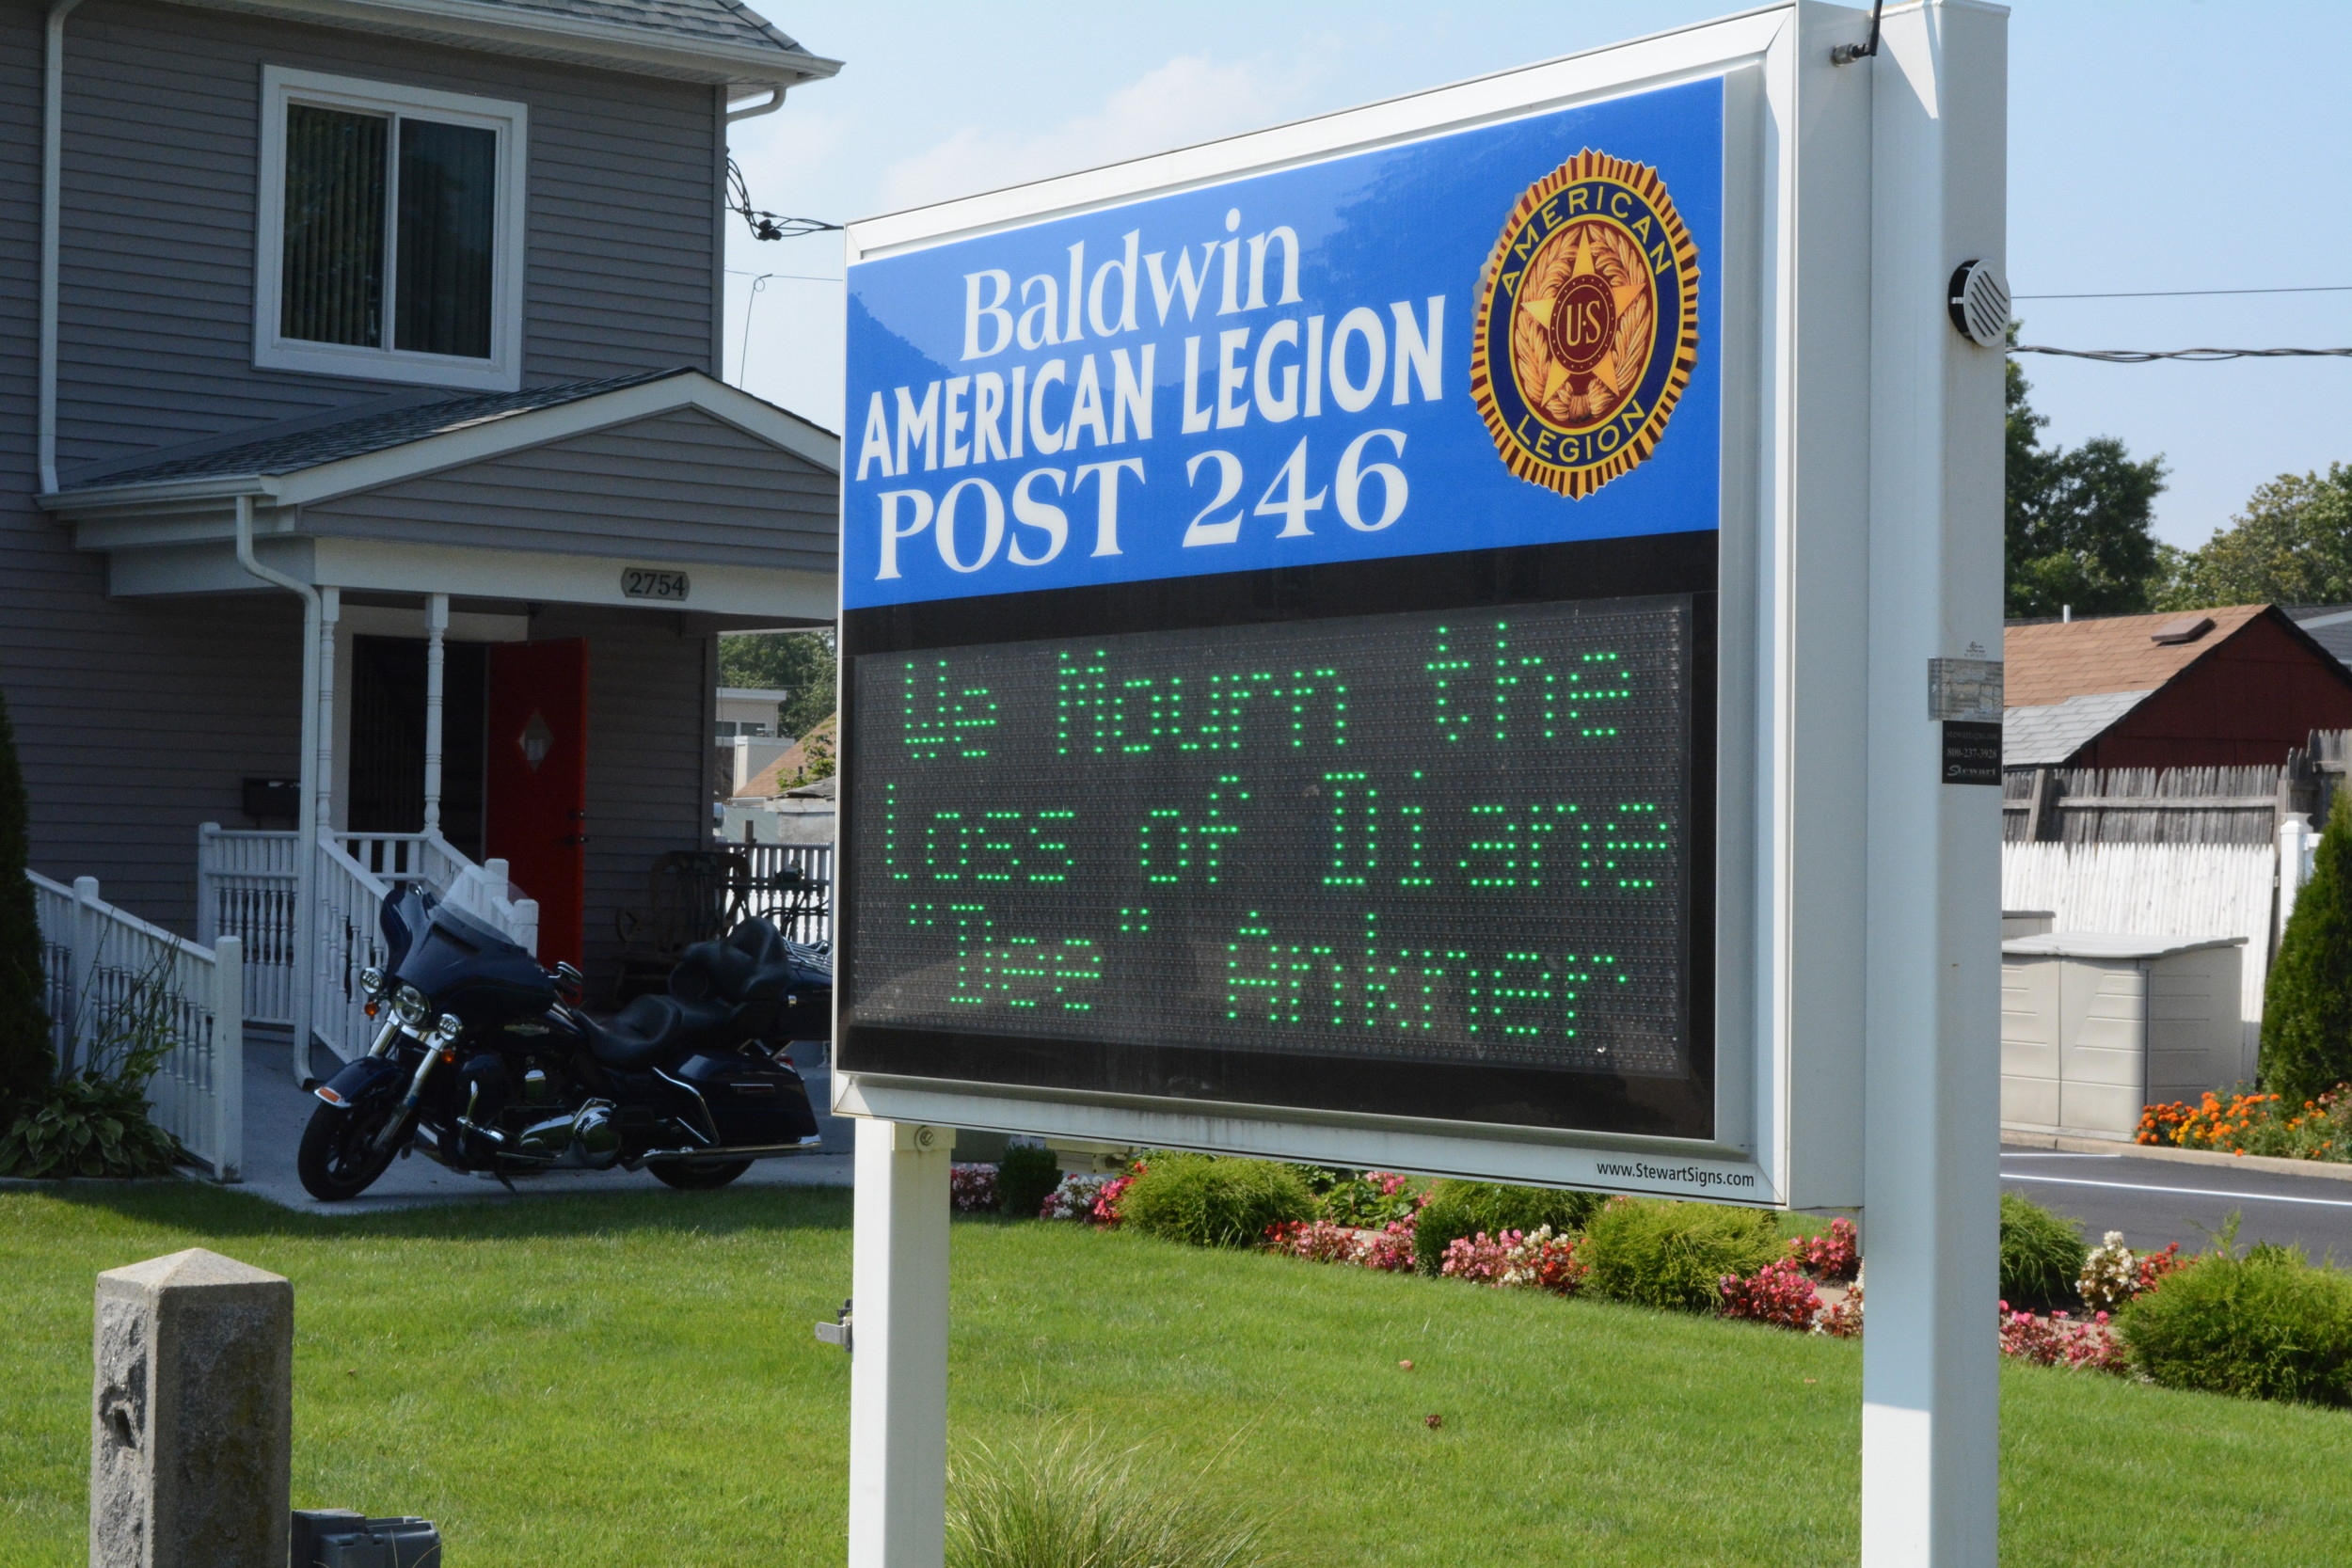 American Legion Post #246 honored Diane Ankner's memory.